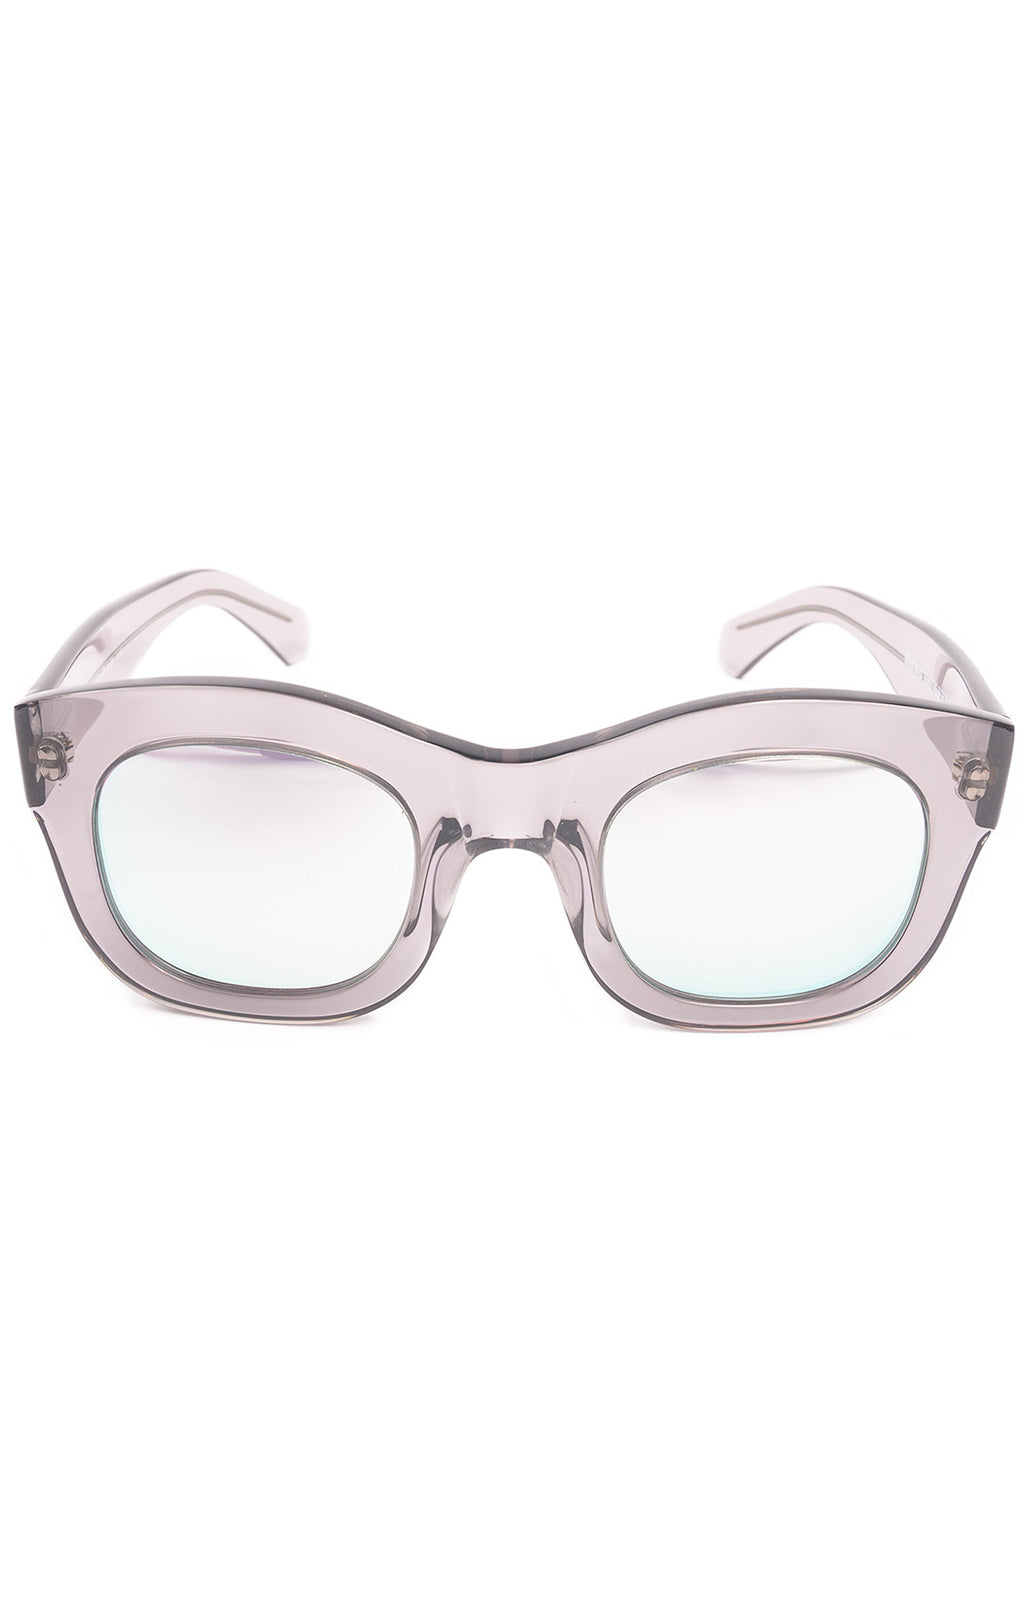 Purple tone frames with mirrored lens